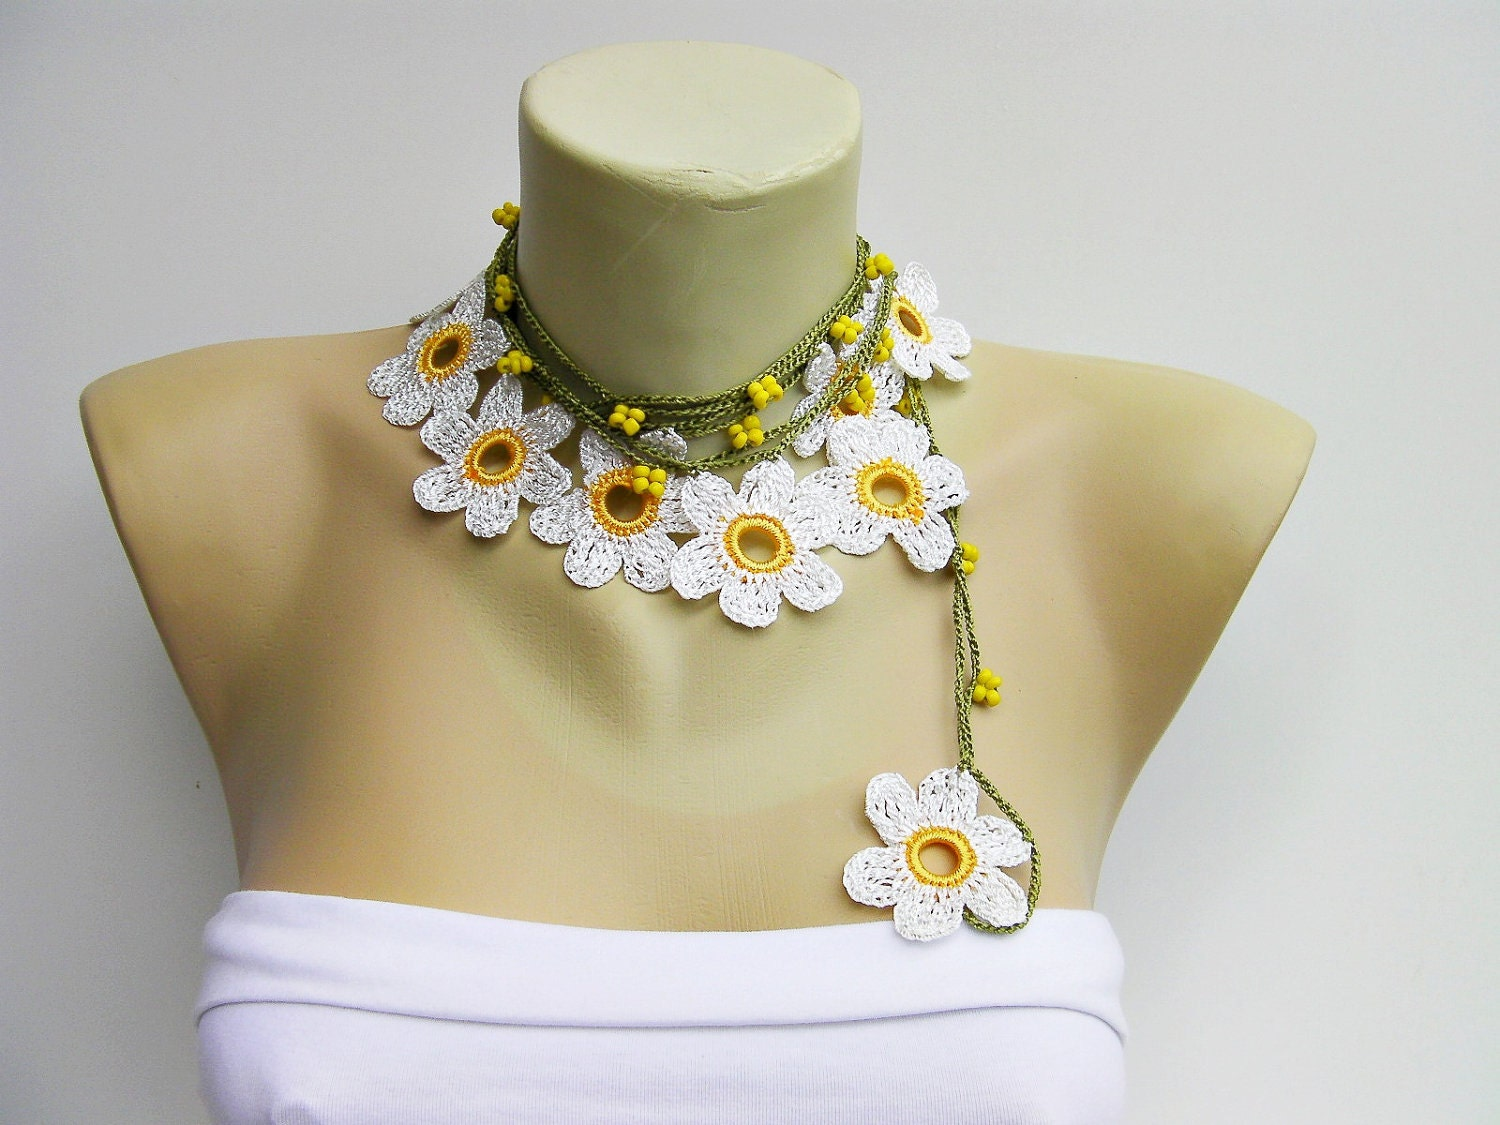 Crocheting Jewelry : CROCHET lariat necklace jewelry Crochet bead work by SenasShop